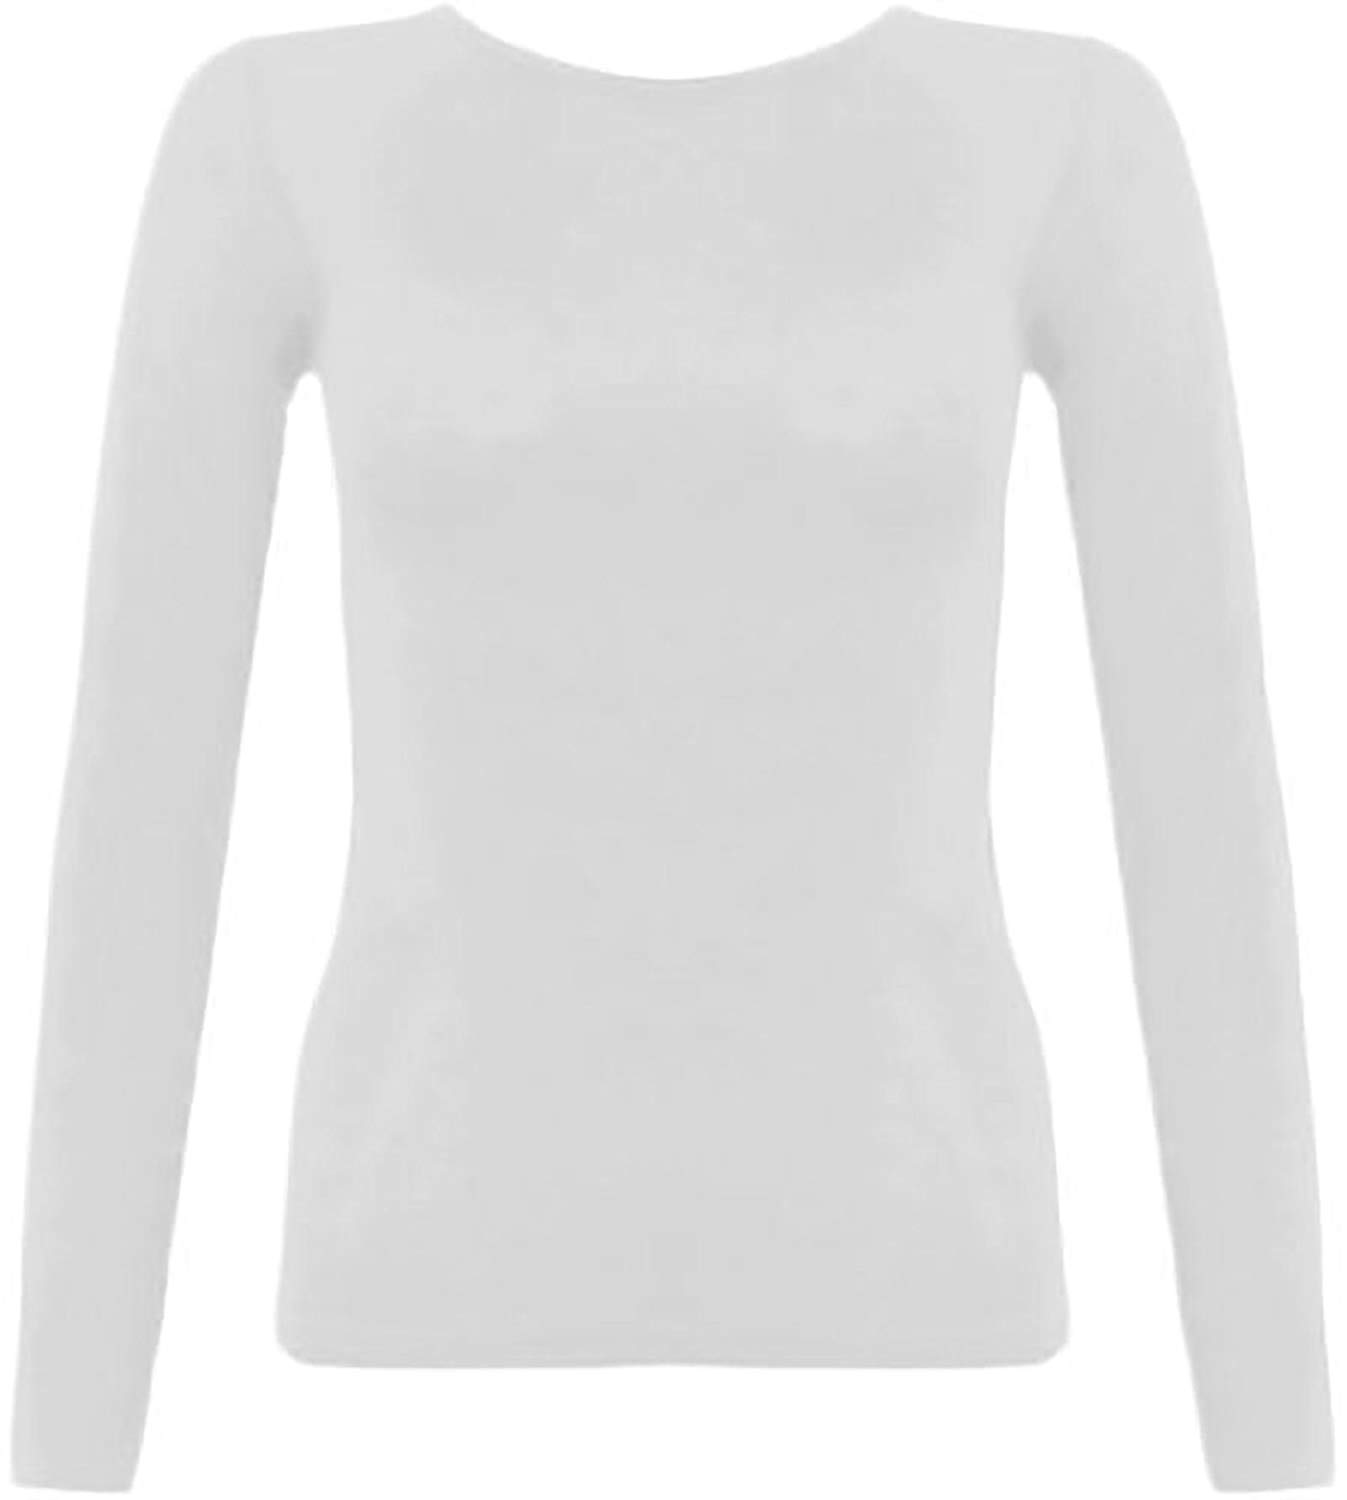 fcc50f41fd MA ONLINE Womens Ladies Plain Basic Long Sleeve Round Neck Top Ladies  Casual T Shirt Tees